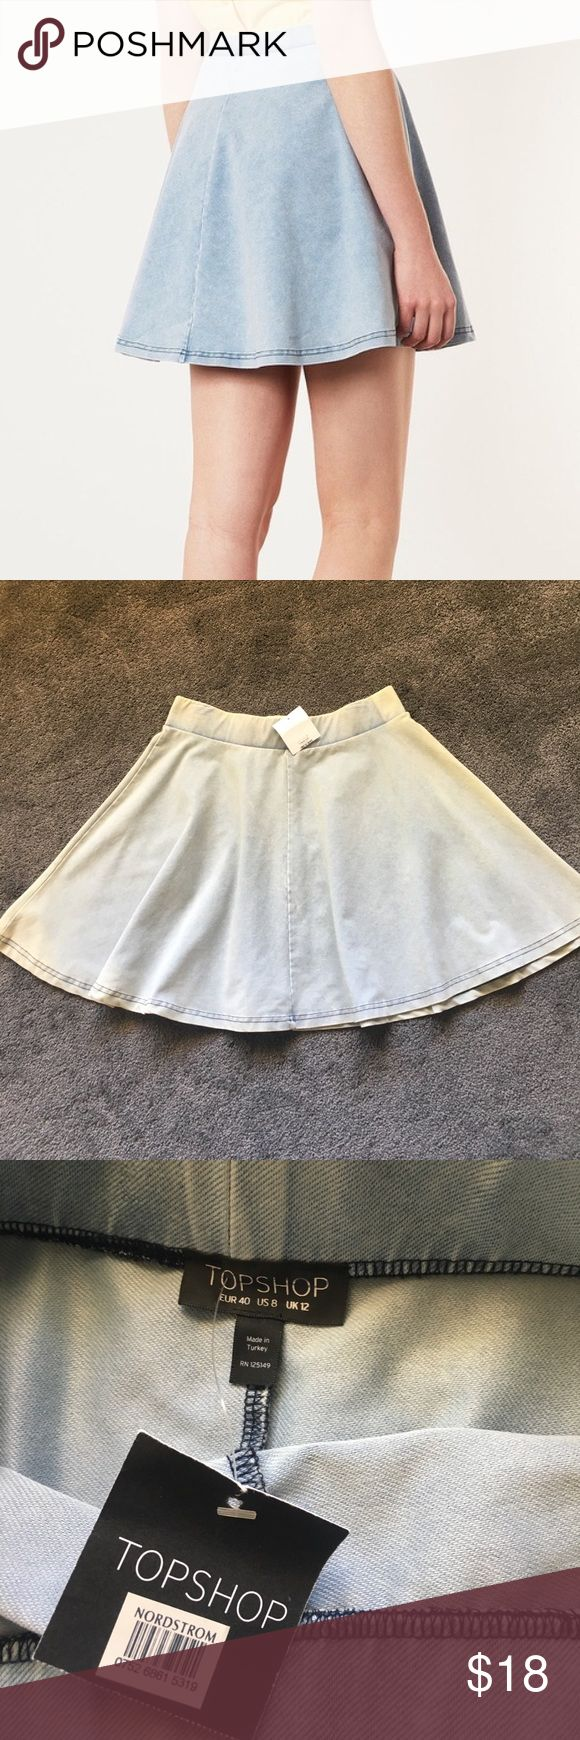 "Topshop acid wash ""denim"" skater skirt Us size 8 skater skirt, new with tags. 68% cotton 23% polyester 9% elastane. Wash with similar colors and tumble dry low. Super cute summer skirt Topshop Skirts Circle & Skater"